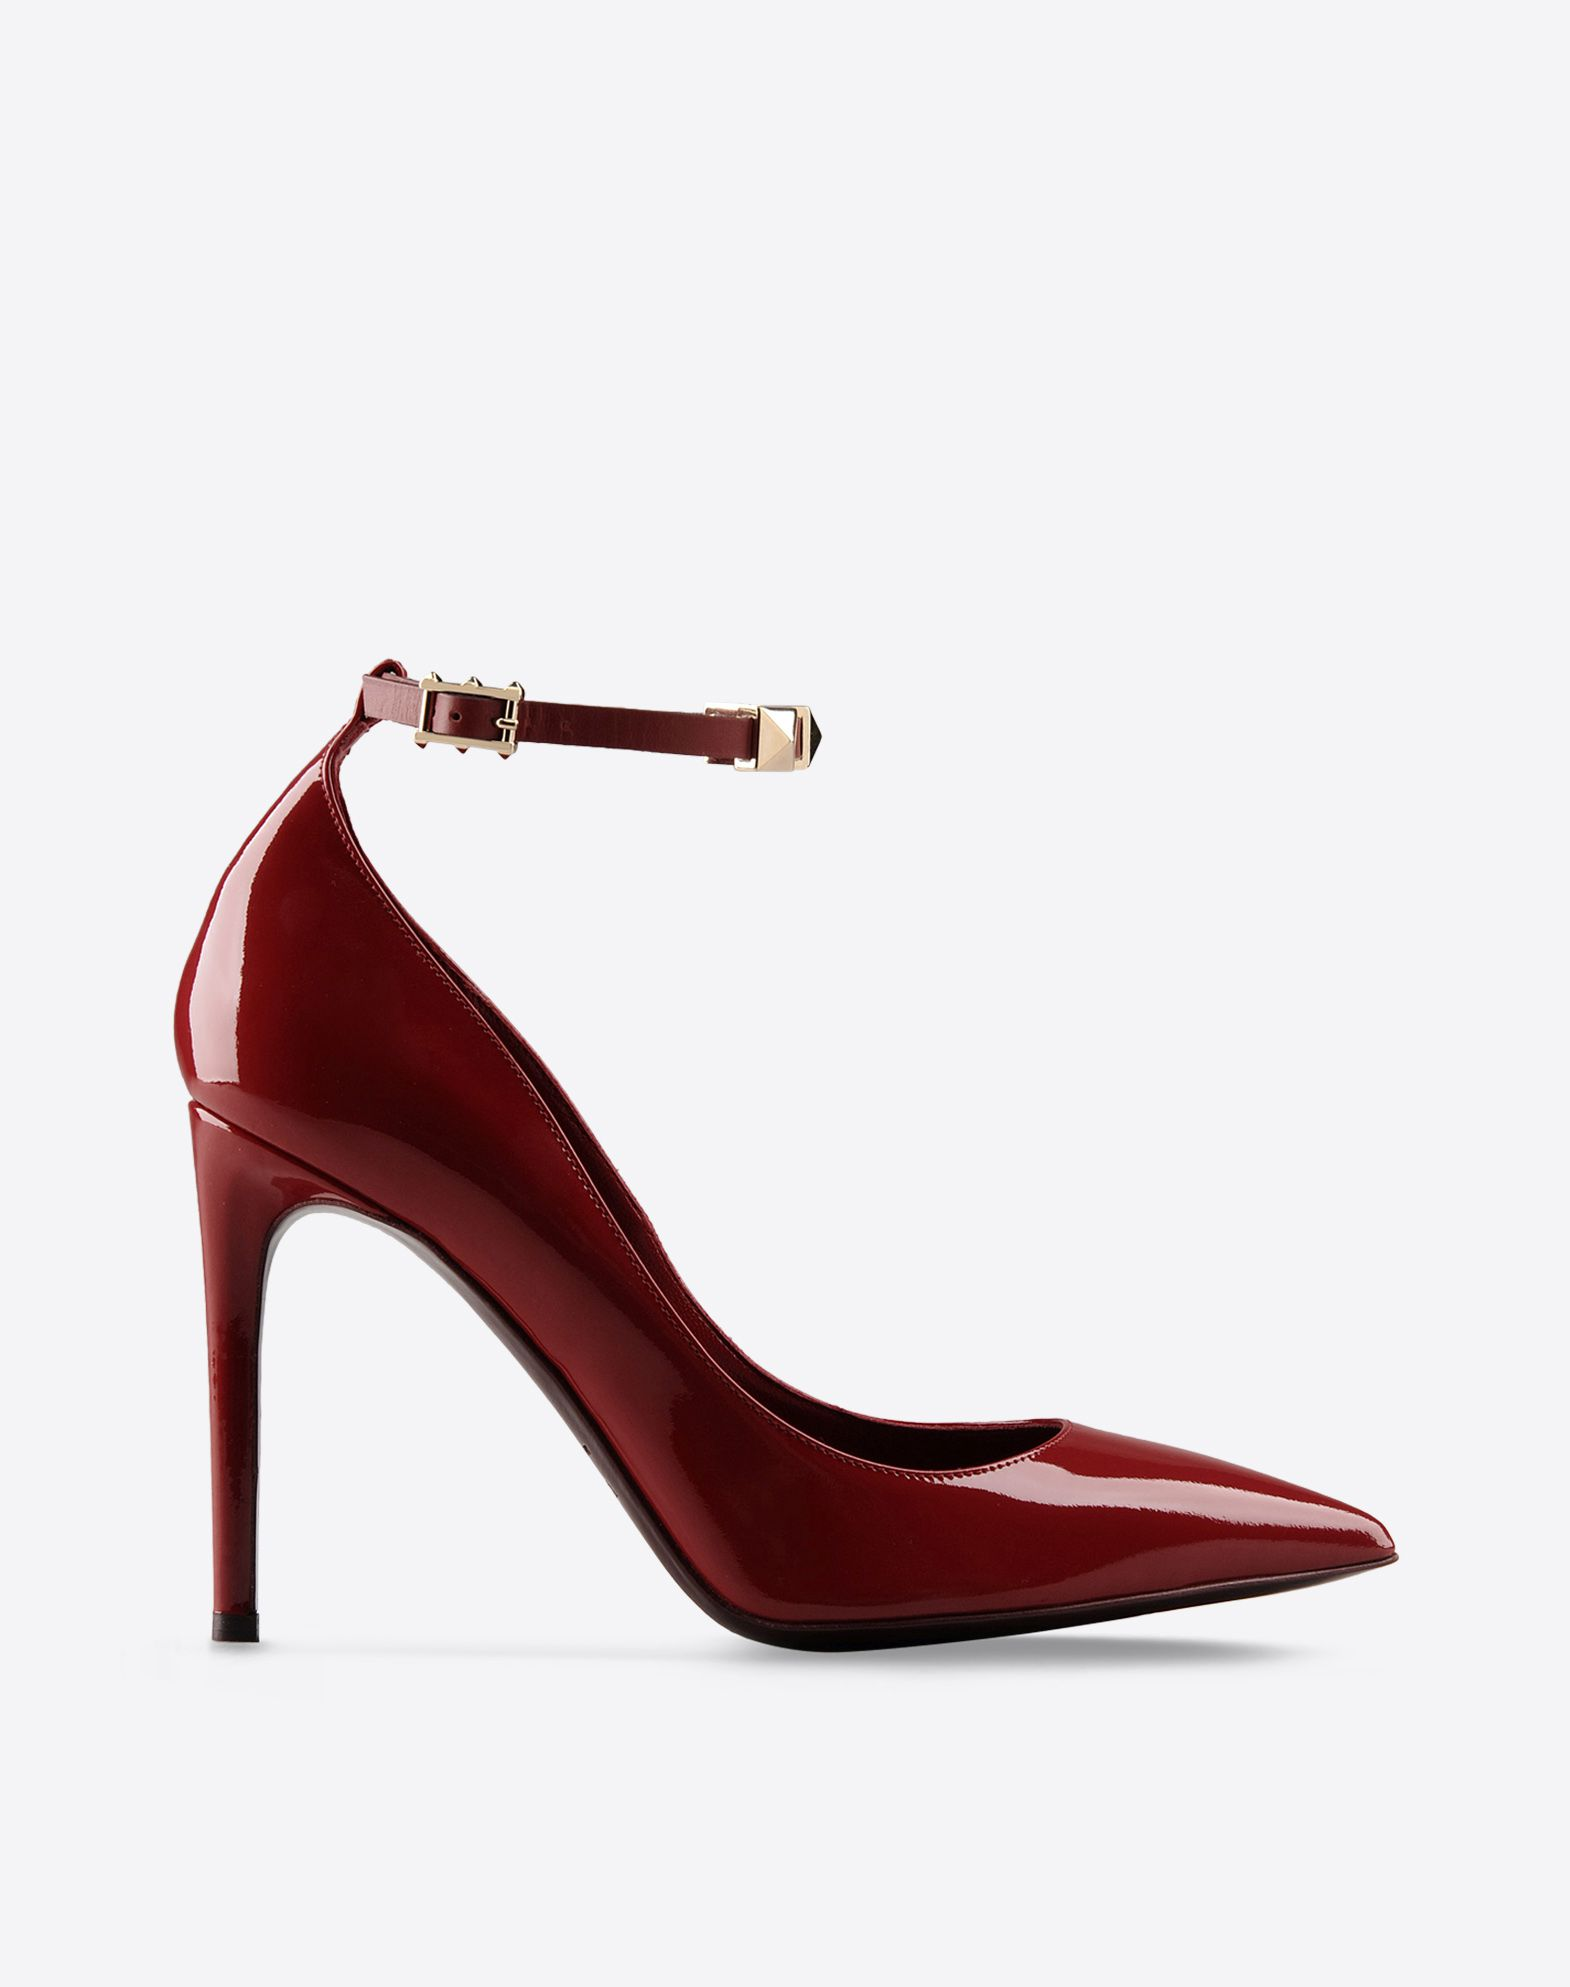 VALENTINO Metal Applications Varnished effect Solid color Buckling ankle strap closure Leather sole Narrow toeline Spike heel  44648999rx